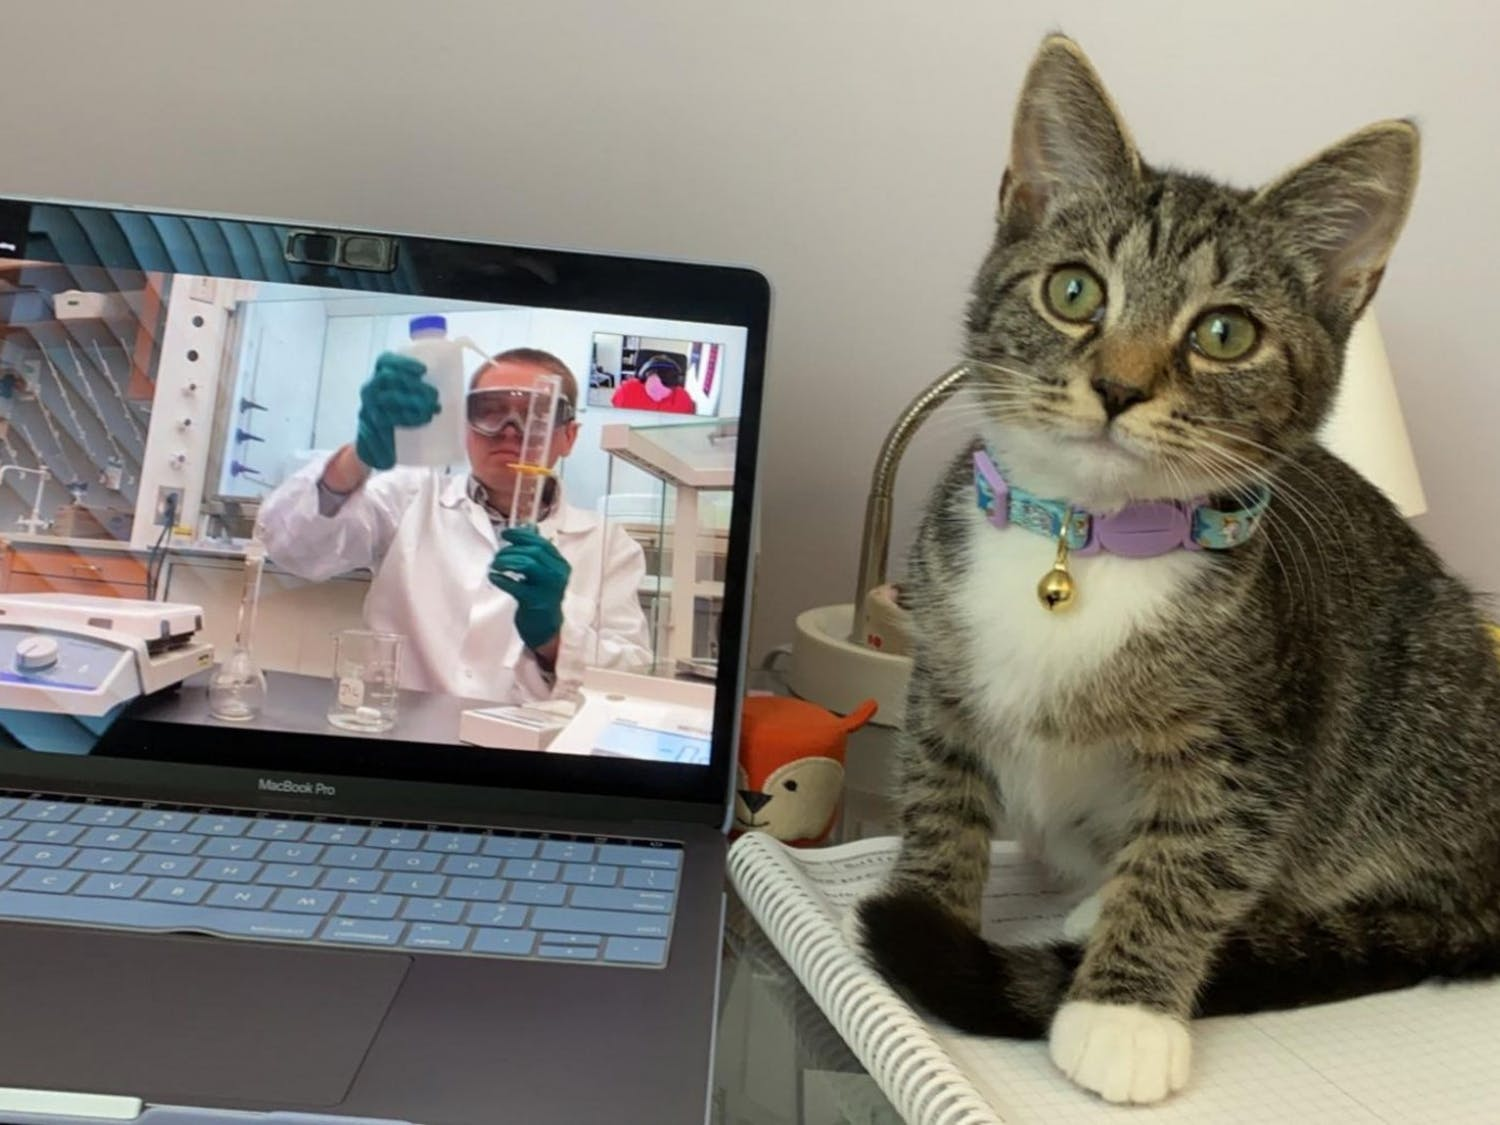 With classes being online, many students have found comfort in having their pets with them during Zoom meetings. Photo courtesy of Sara Meehan.